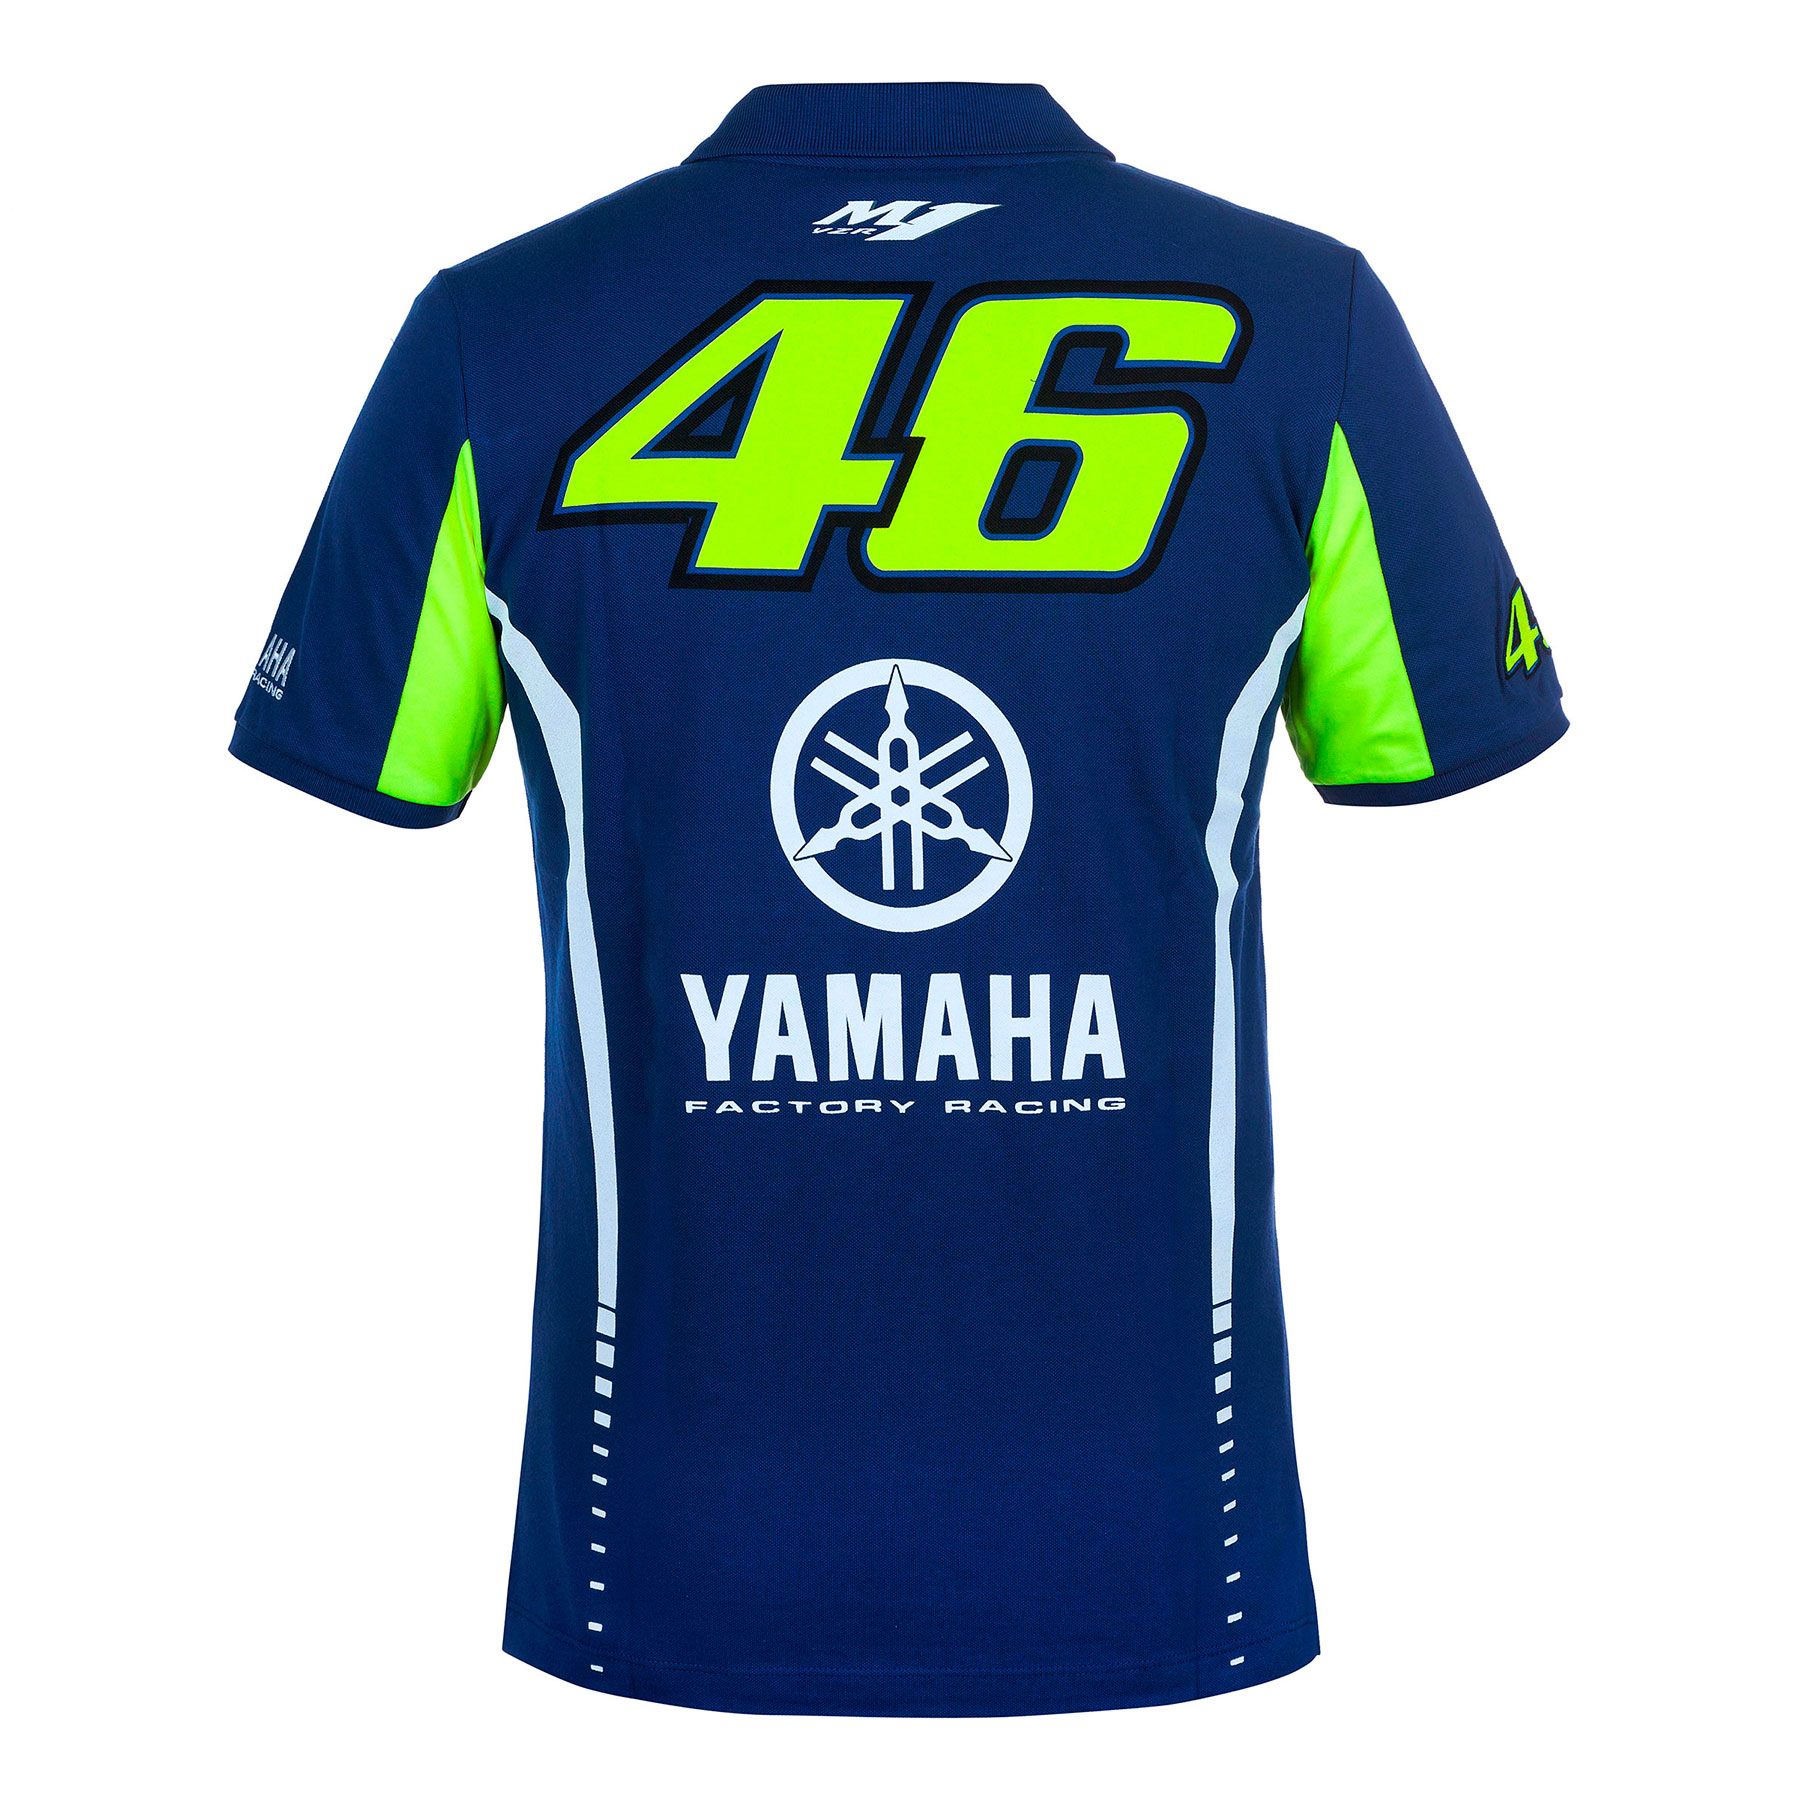 polo valentino rossi yamaha vr46 oficial 2017 en motorbike store. Black Bedroom Furniture Sets. Home Design Ideas